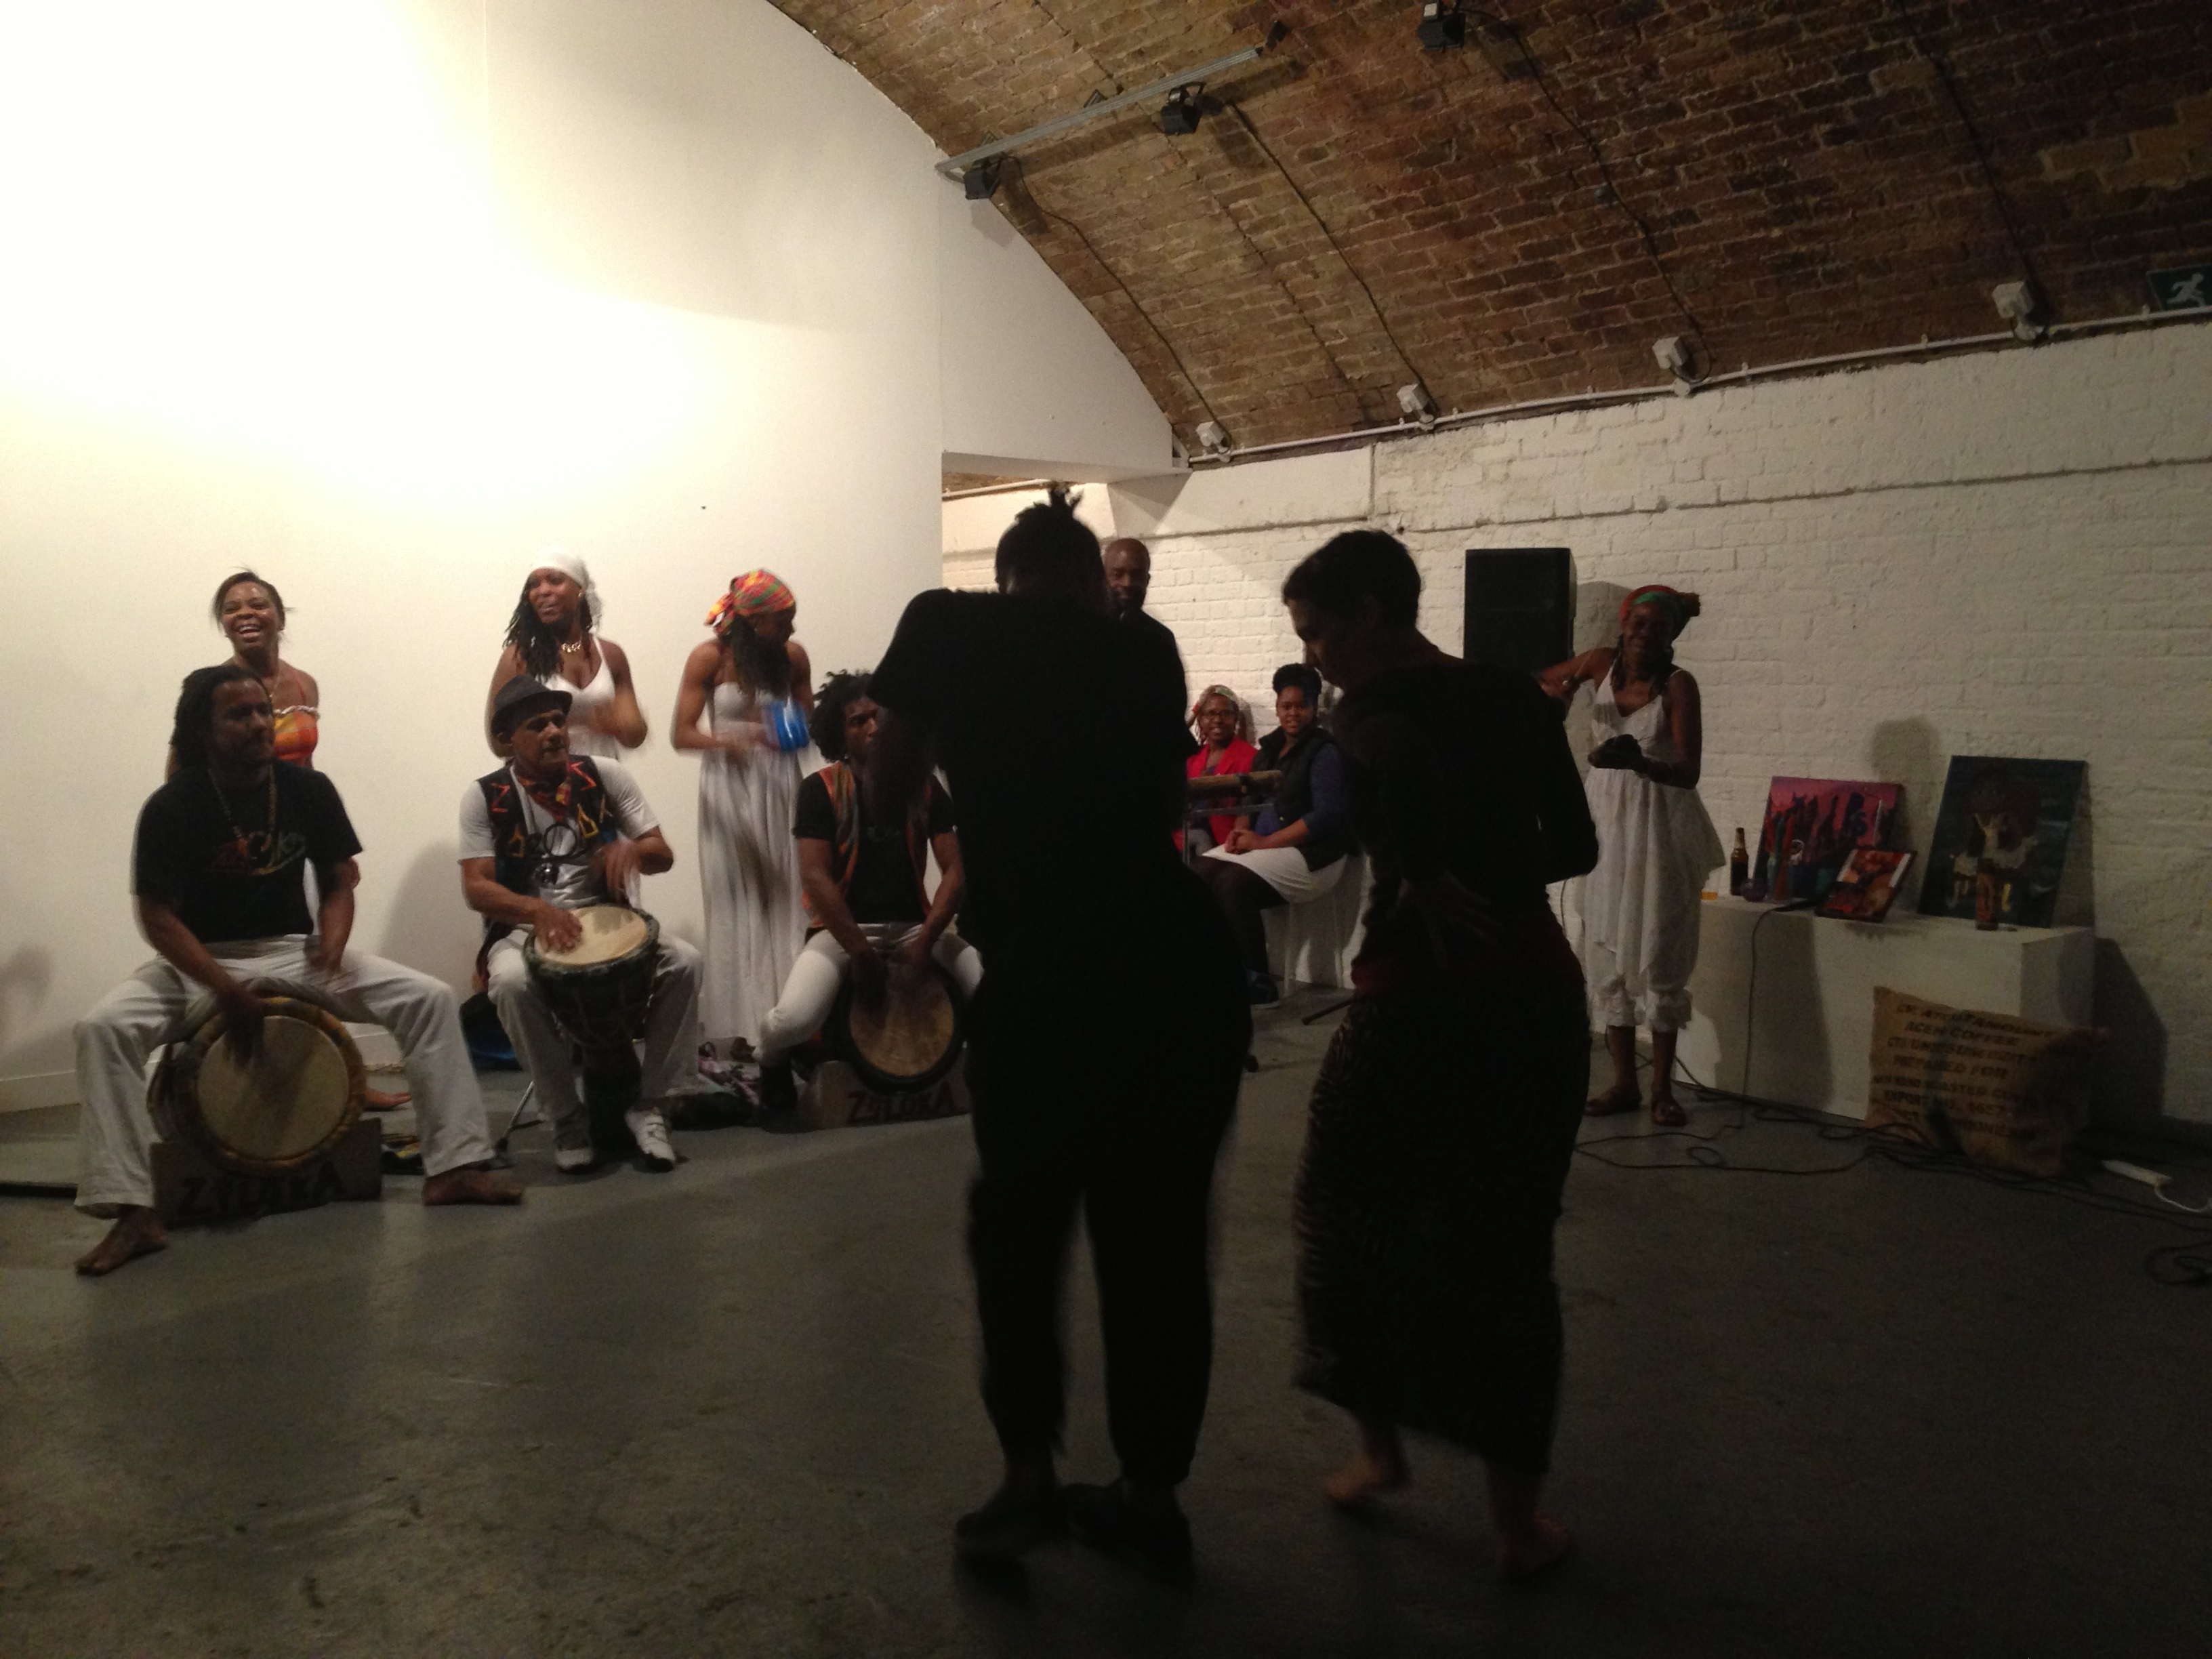 Zil'oKA at the Hoxton Arches. Photo by Ananya Jahanara Kabir